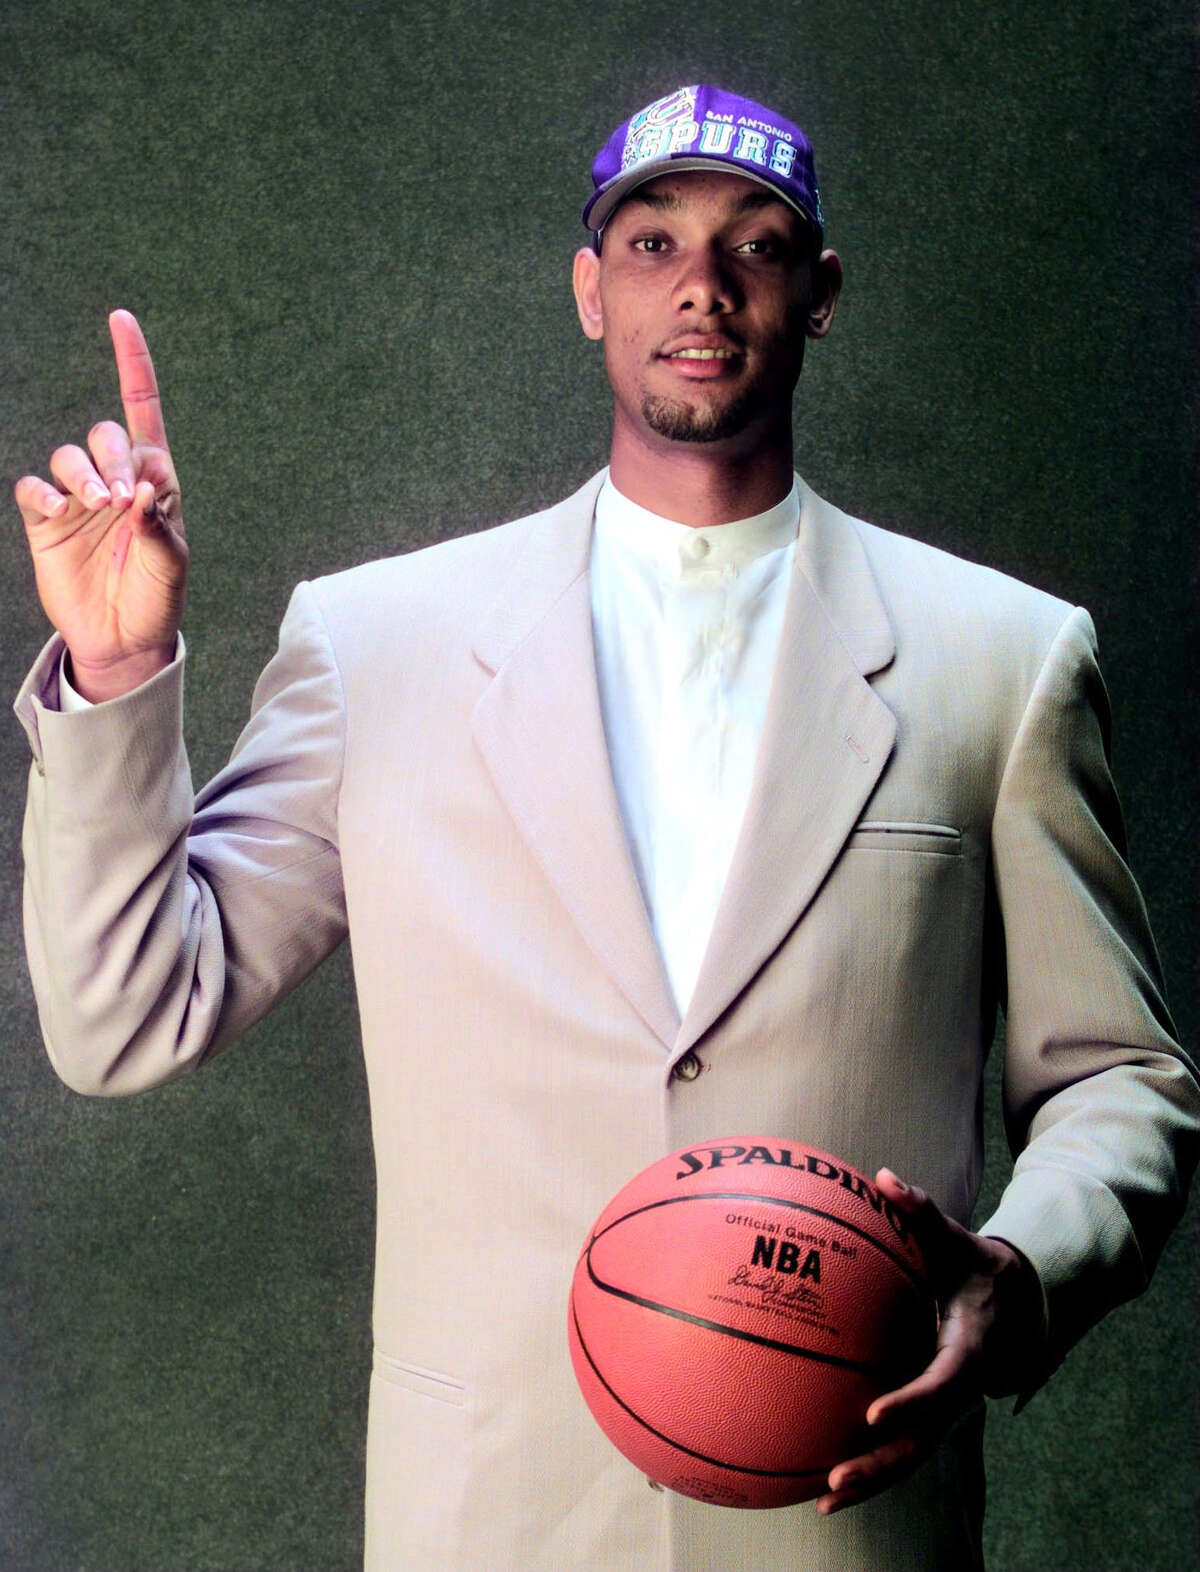 Former Wake Forest player Tim Duncan poses for a portrait after being selected by the San Antonio Spurs as the first pick overall in the 1997 N BA Draft in Charlotte, N.C., Wednesday, June 25, 1997. (AP Photo/NBA Photos, Andy Hayt)